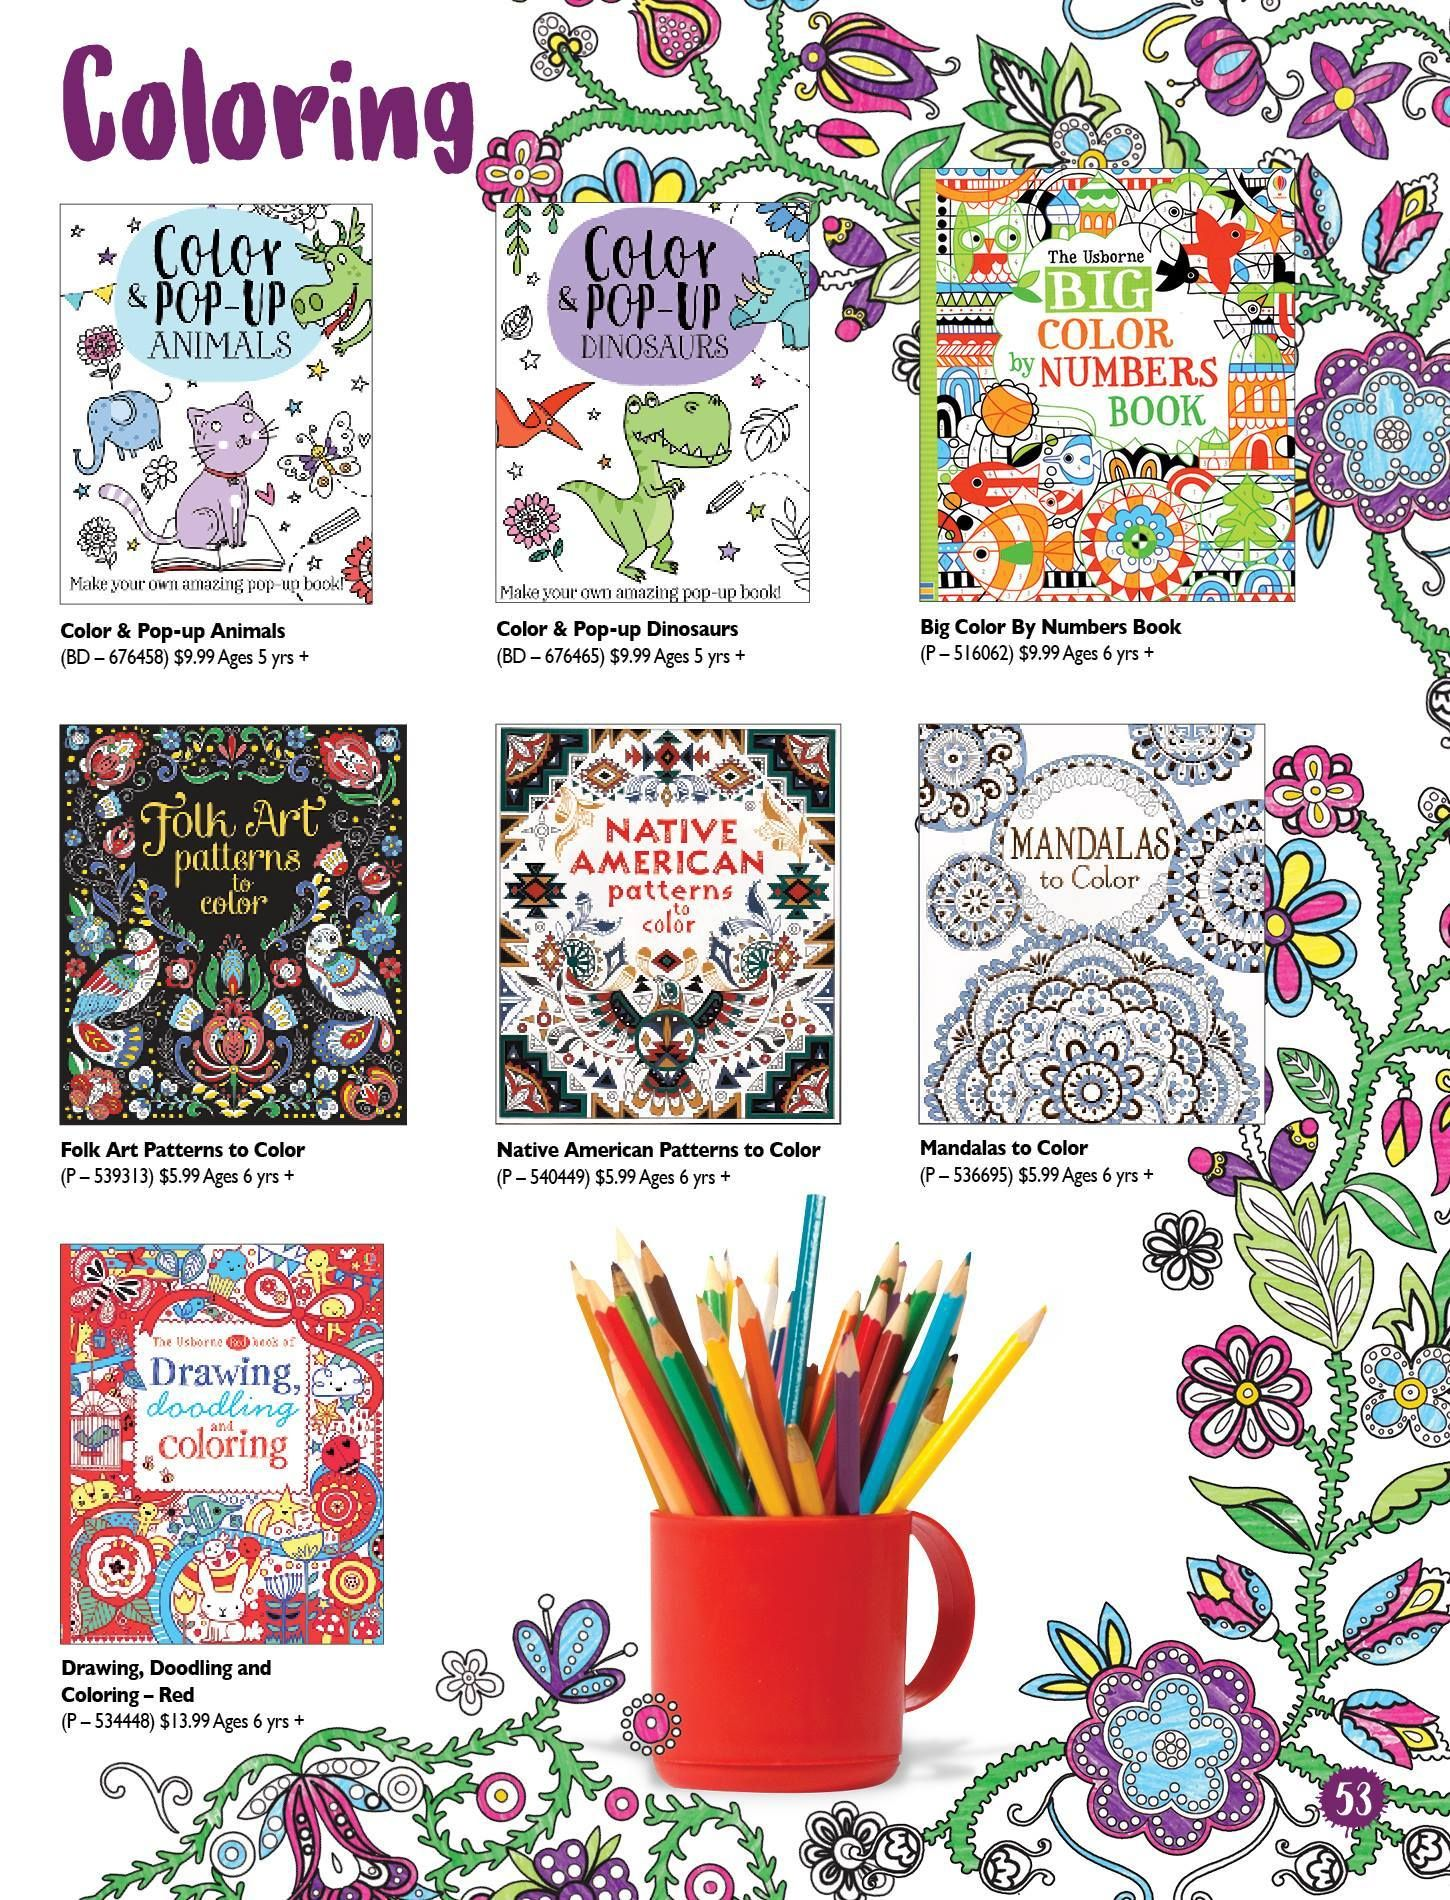 Have Some Fun Coloring Doodling Creating Pop Up Books And More Colorbooks Coloring Interactive Books For Kids Doodling Dinosaur Coloring